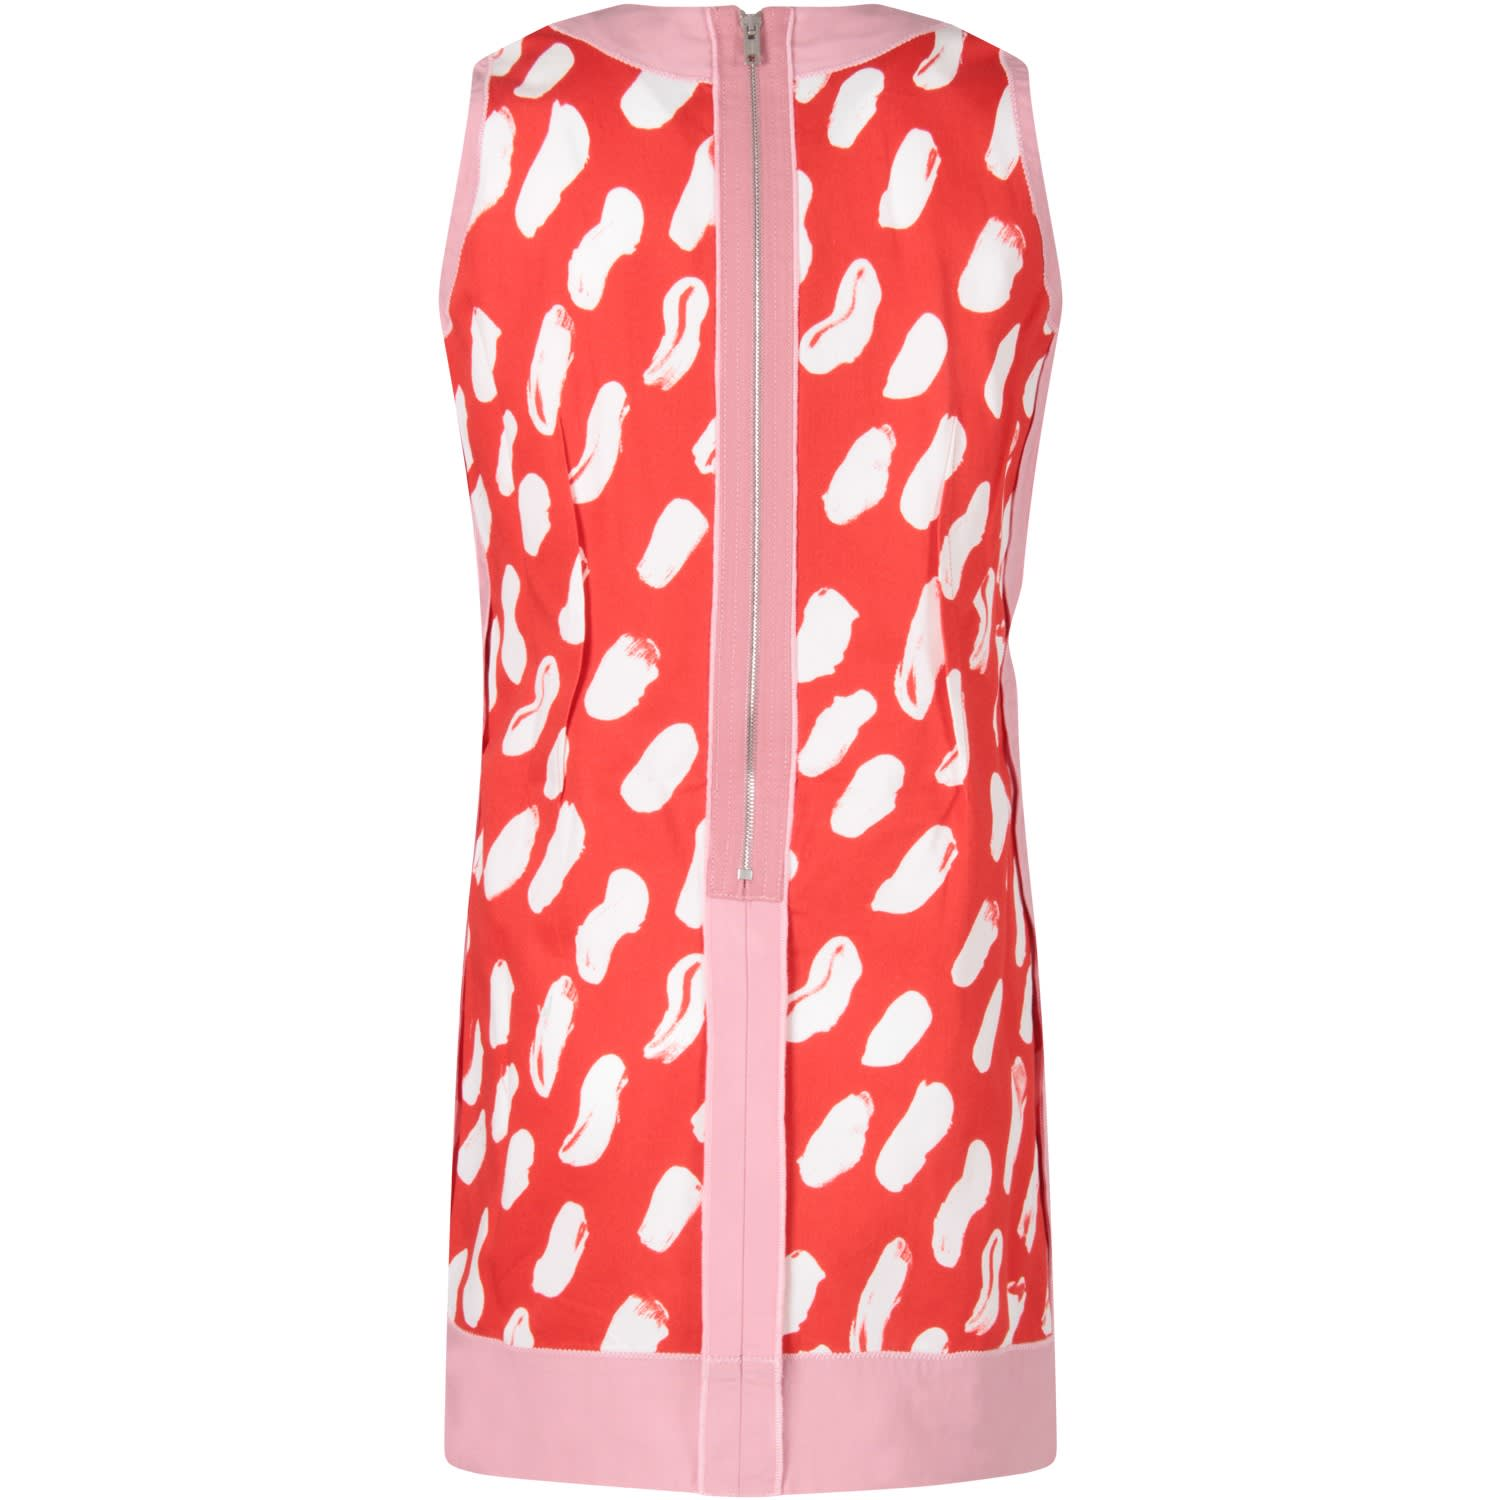 Buy Marni Red Girl Dress With White Spots online, shop Marni with free shipping